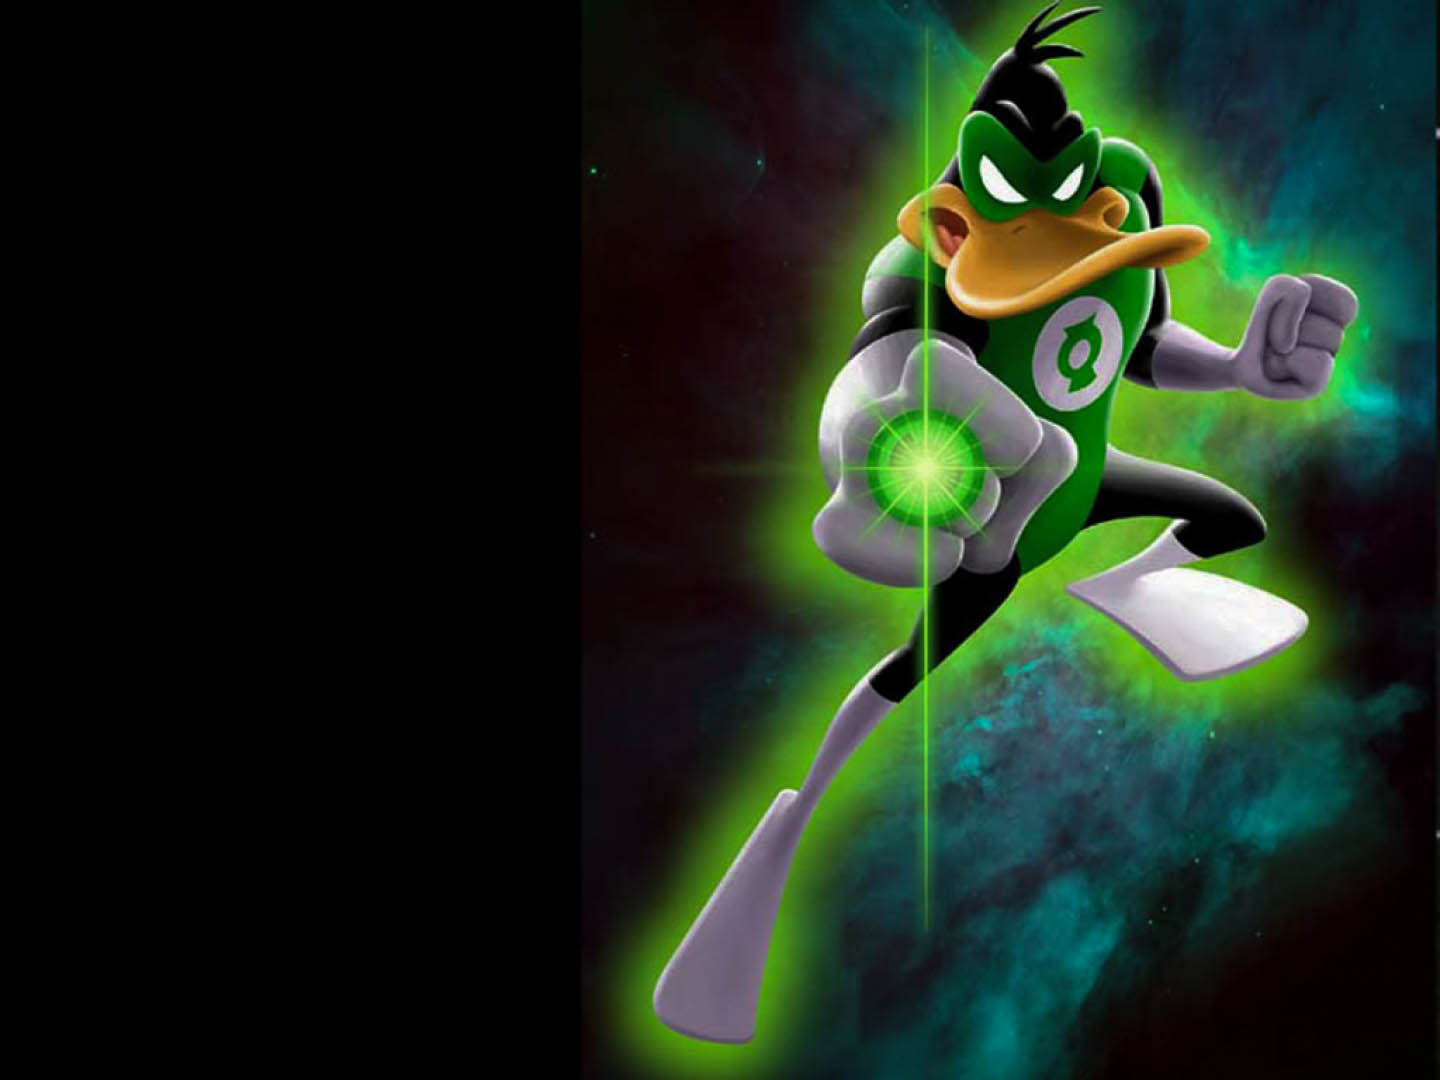 Supergirl Hd Wallpapers 1080p Daffy Duck Best Slected Wallpapers High Quality All Hd